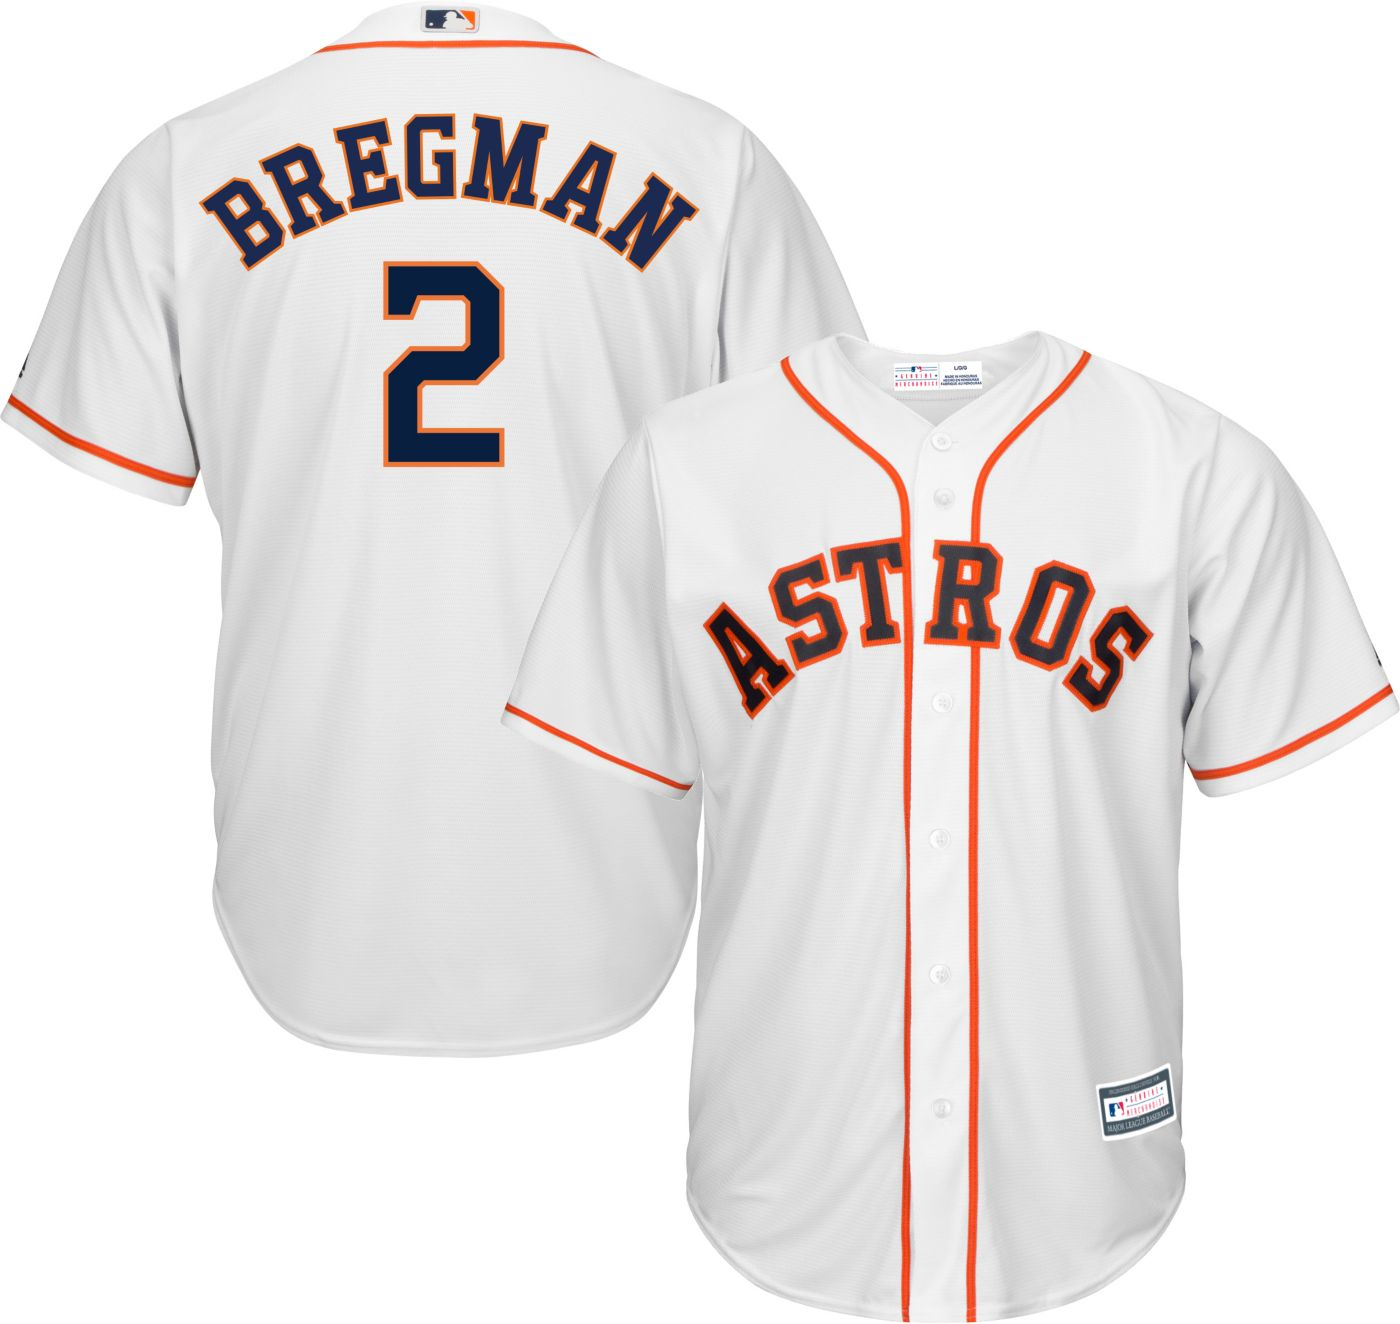 Youth Replica Houston Astros Alex Bregman #2 Home White Jersey